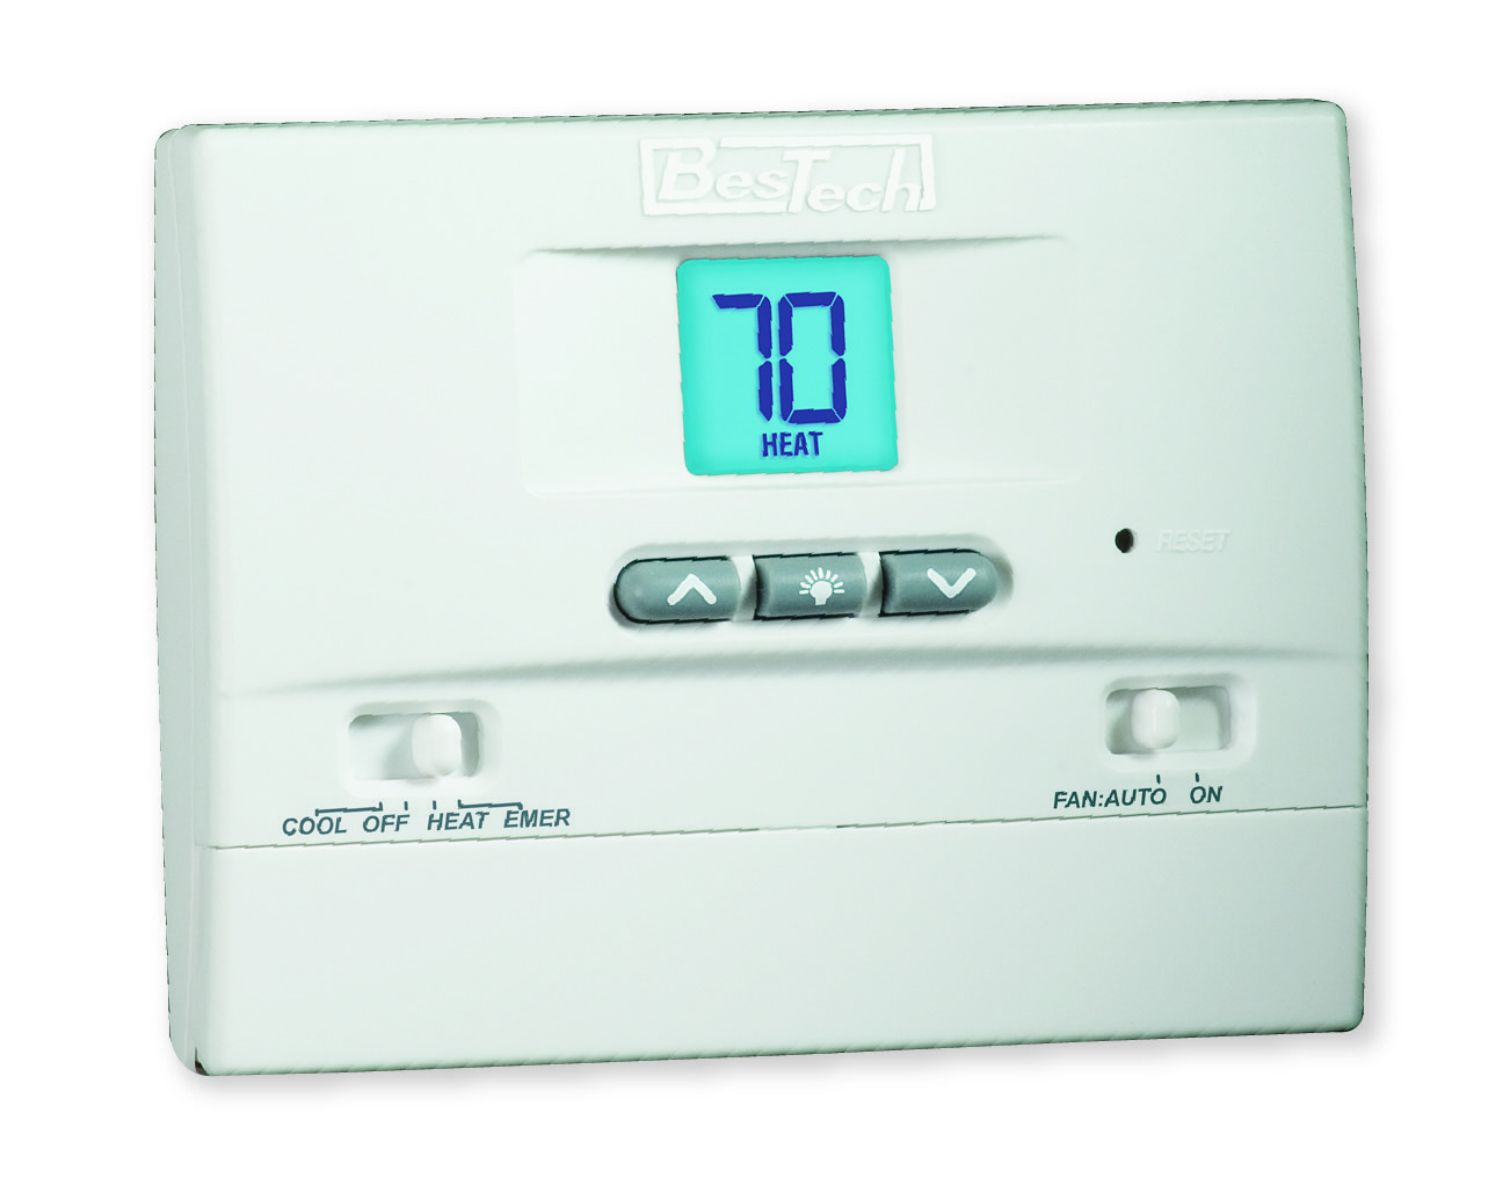 Home thermostat troubleshooting & repairs.